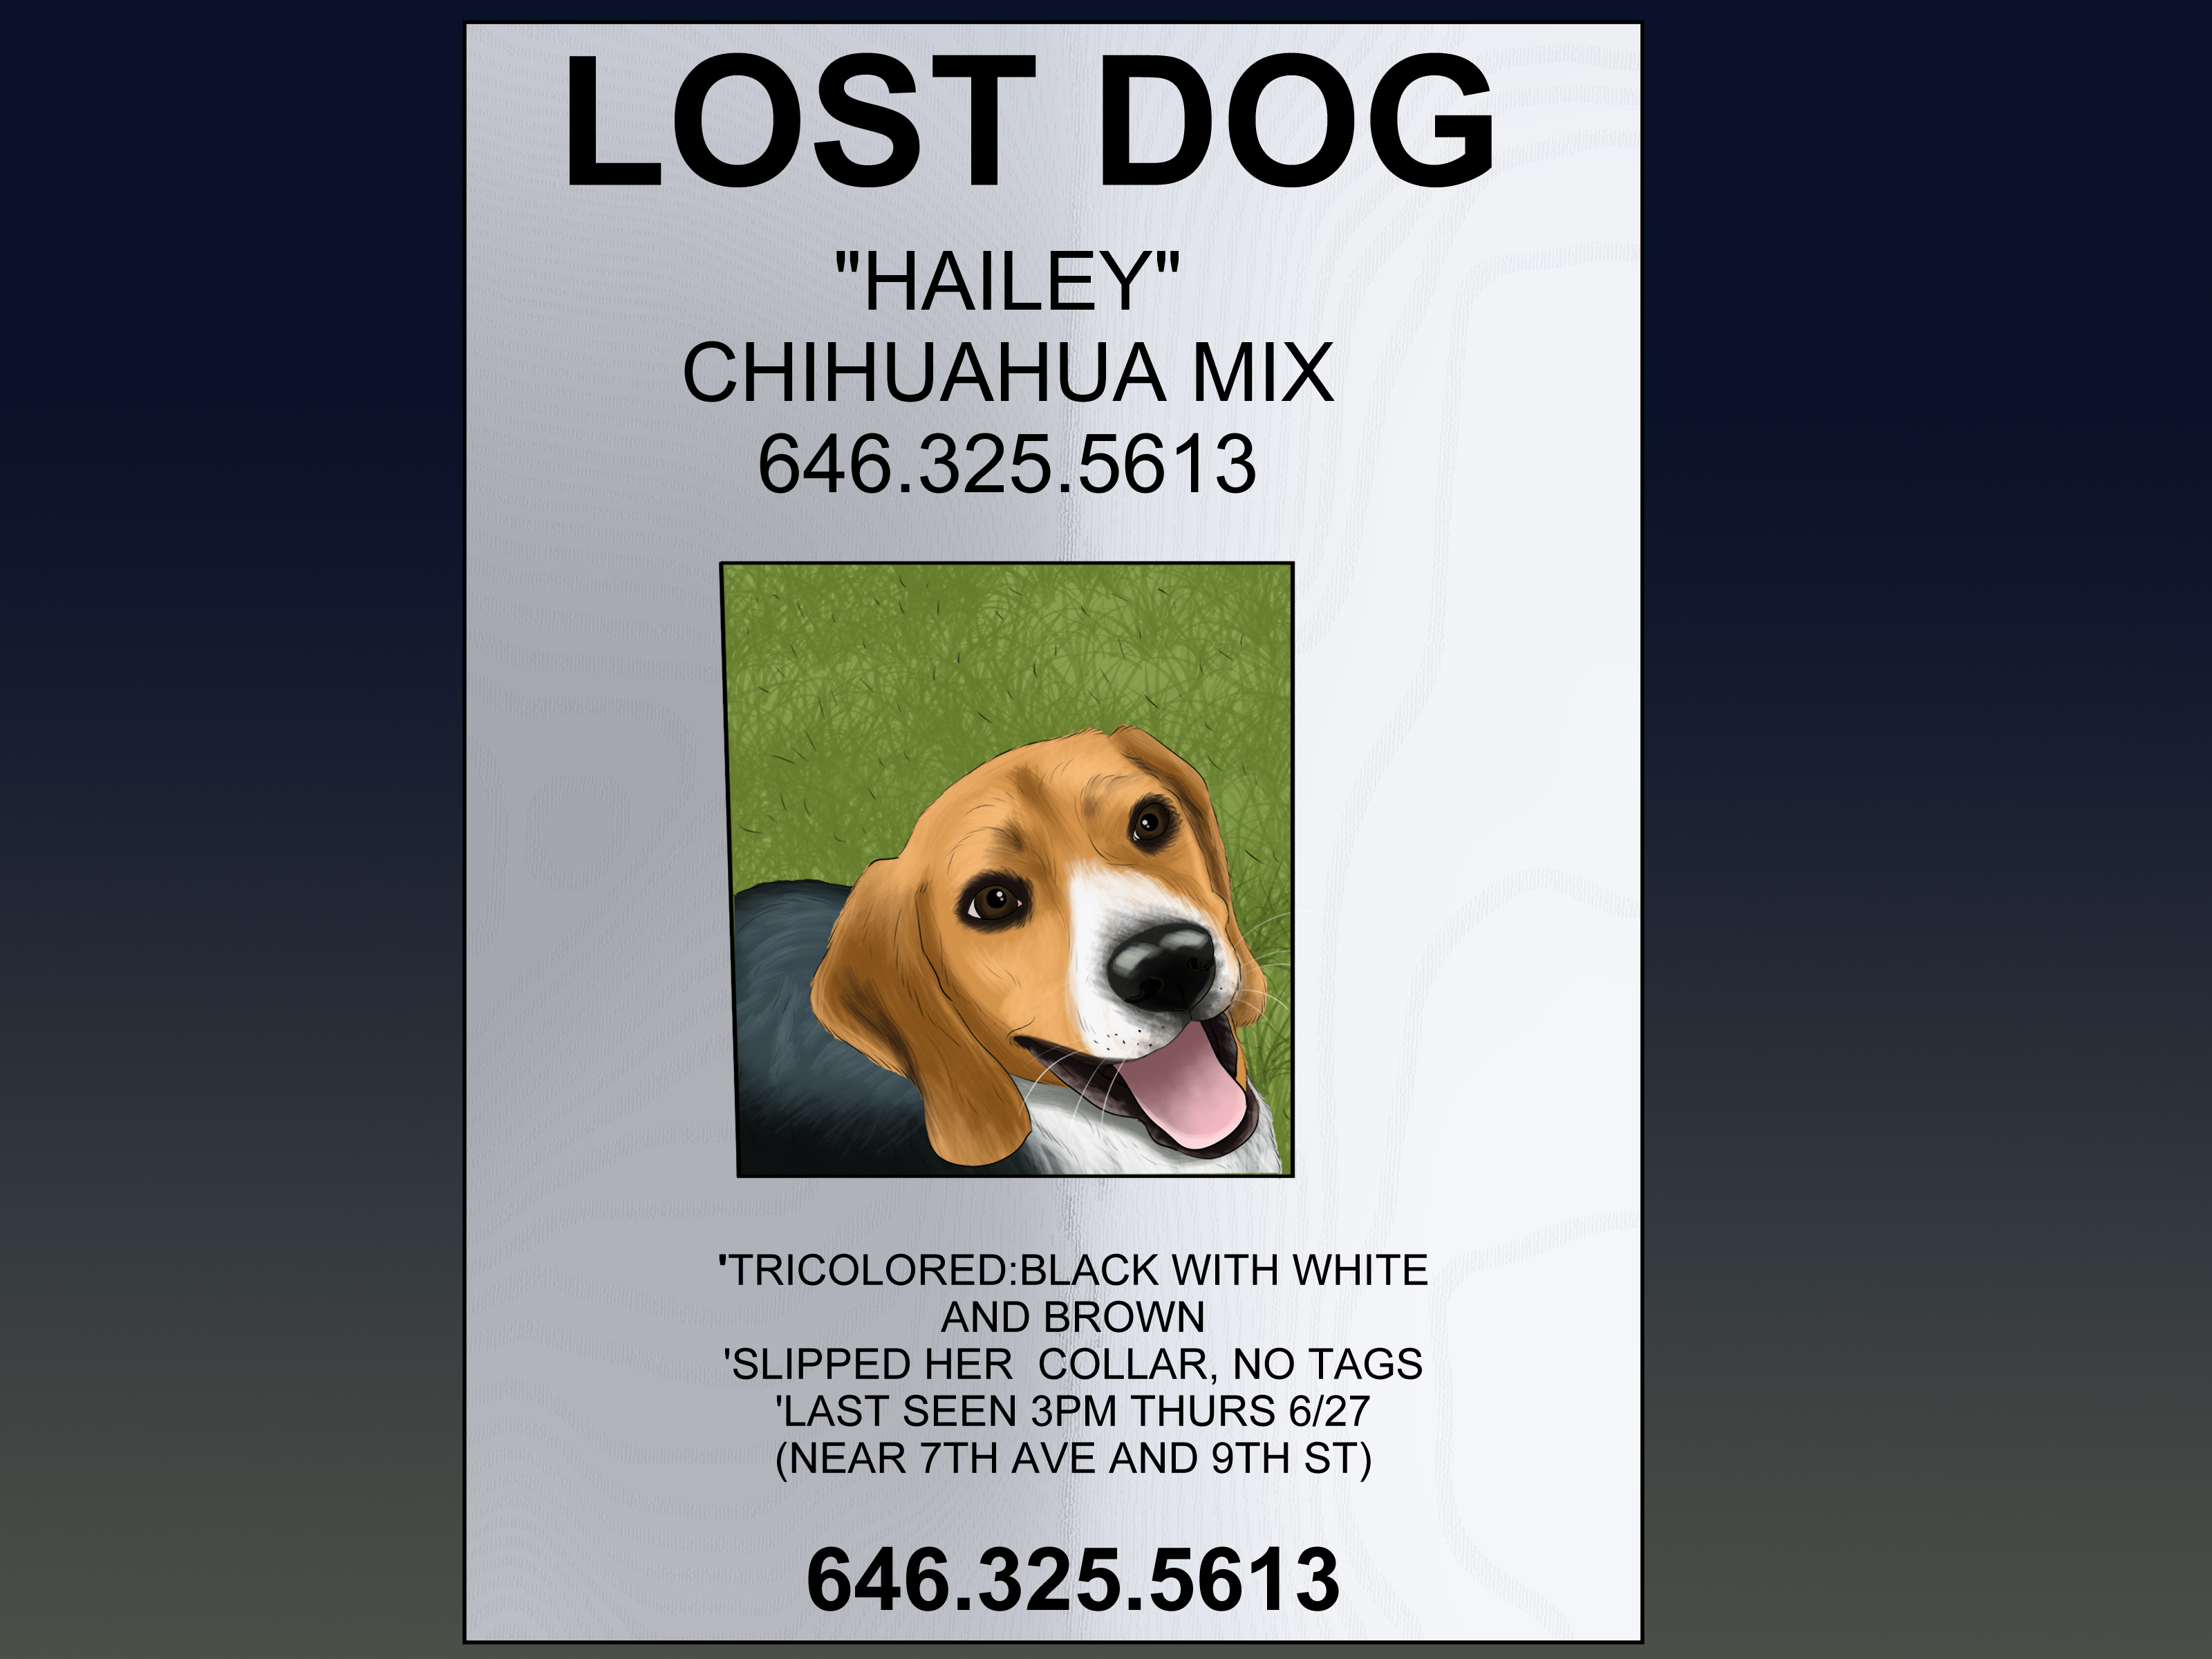 an effective missing pet poster